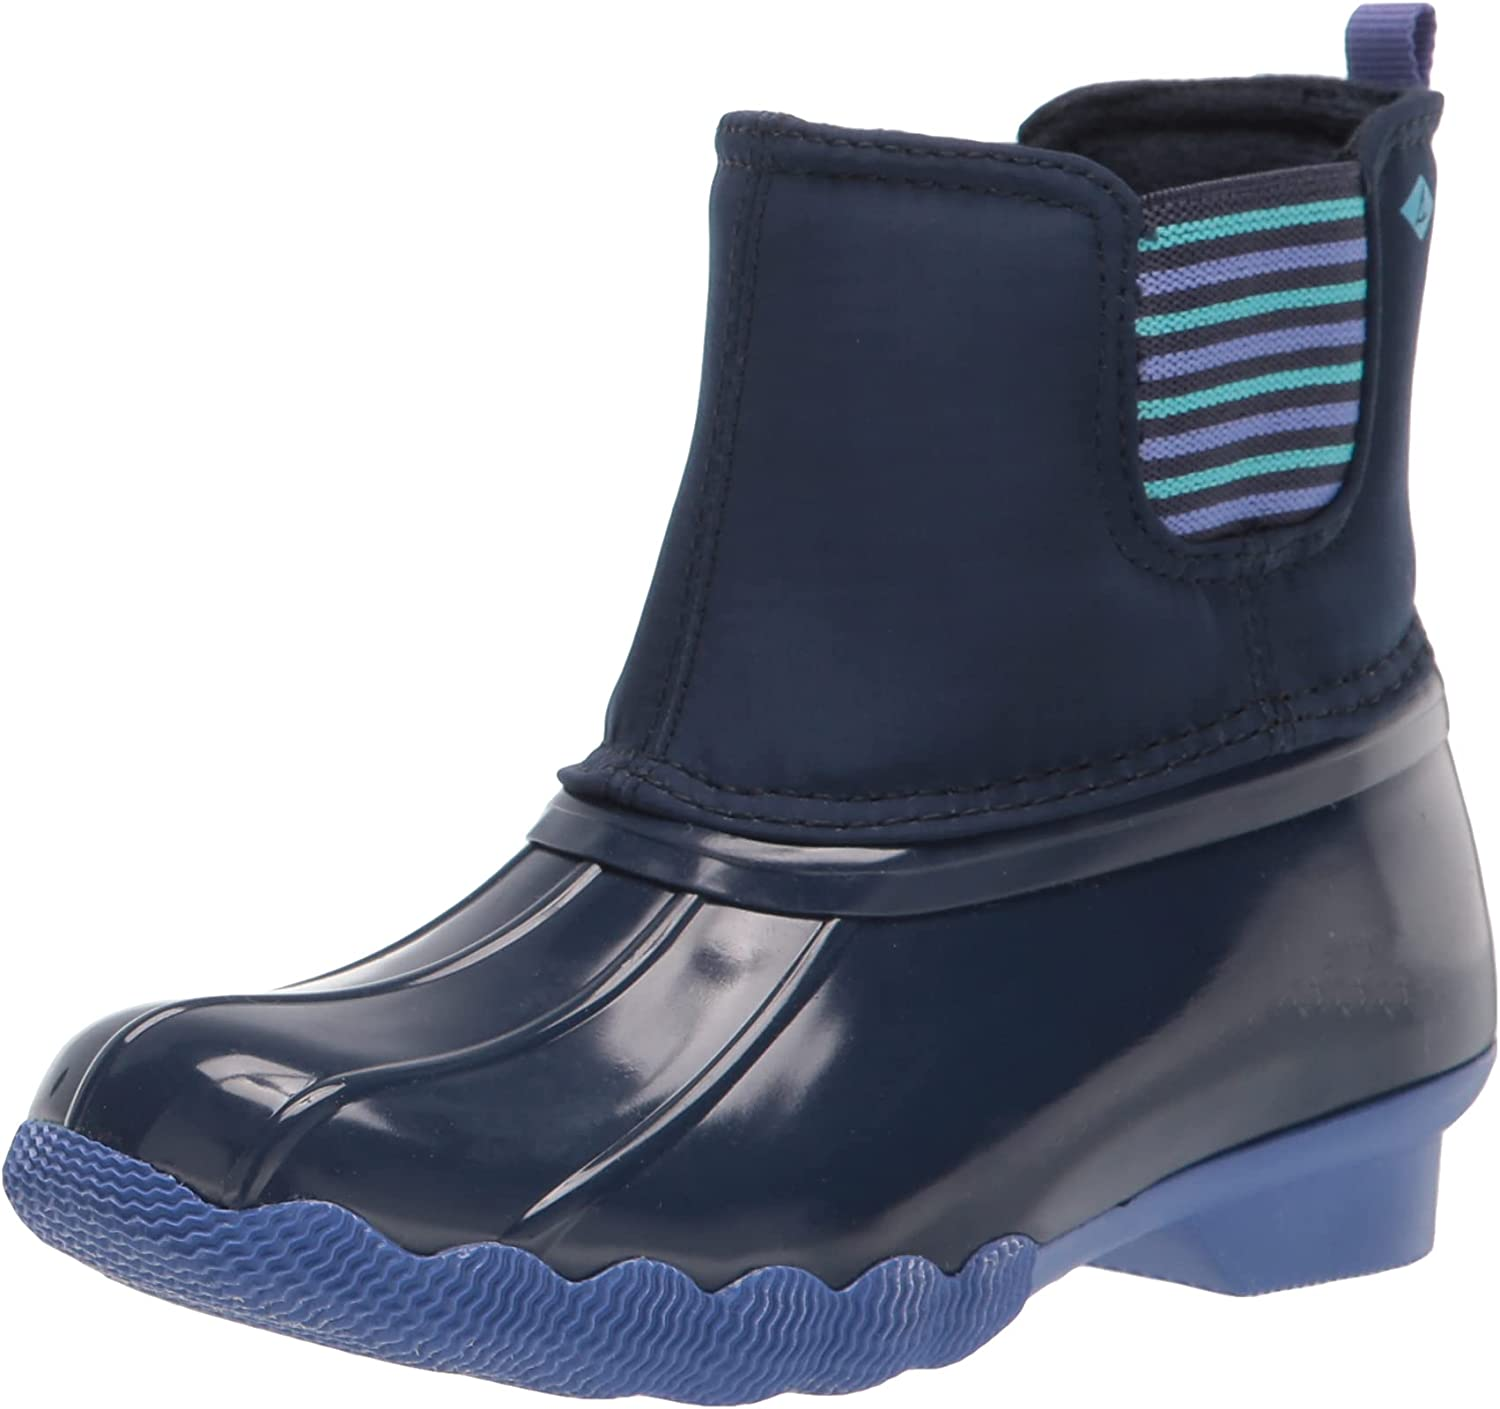 NEW before Indefinitely selling ☆ Sperry Unisex-Child Saltwater Chelsea Snow Boot Jr